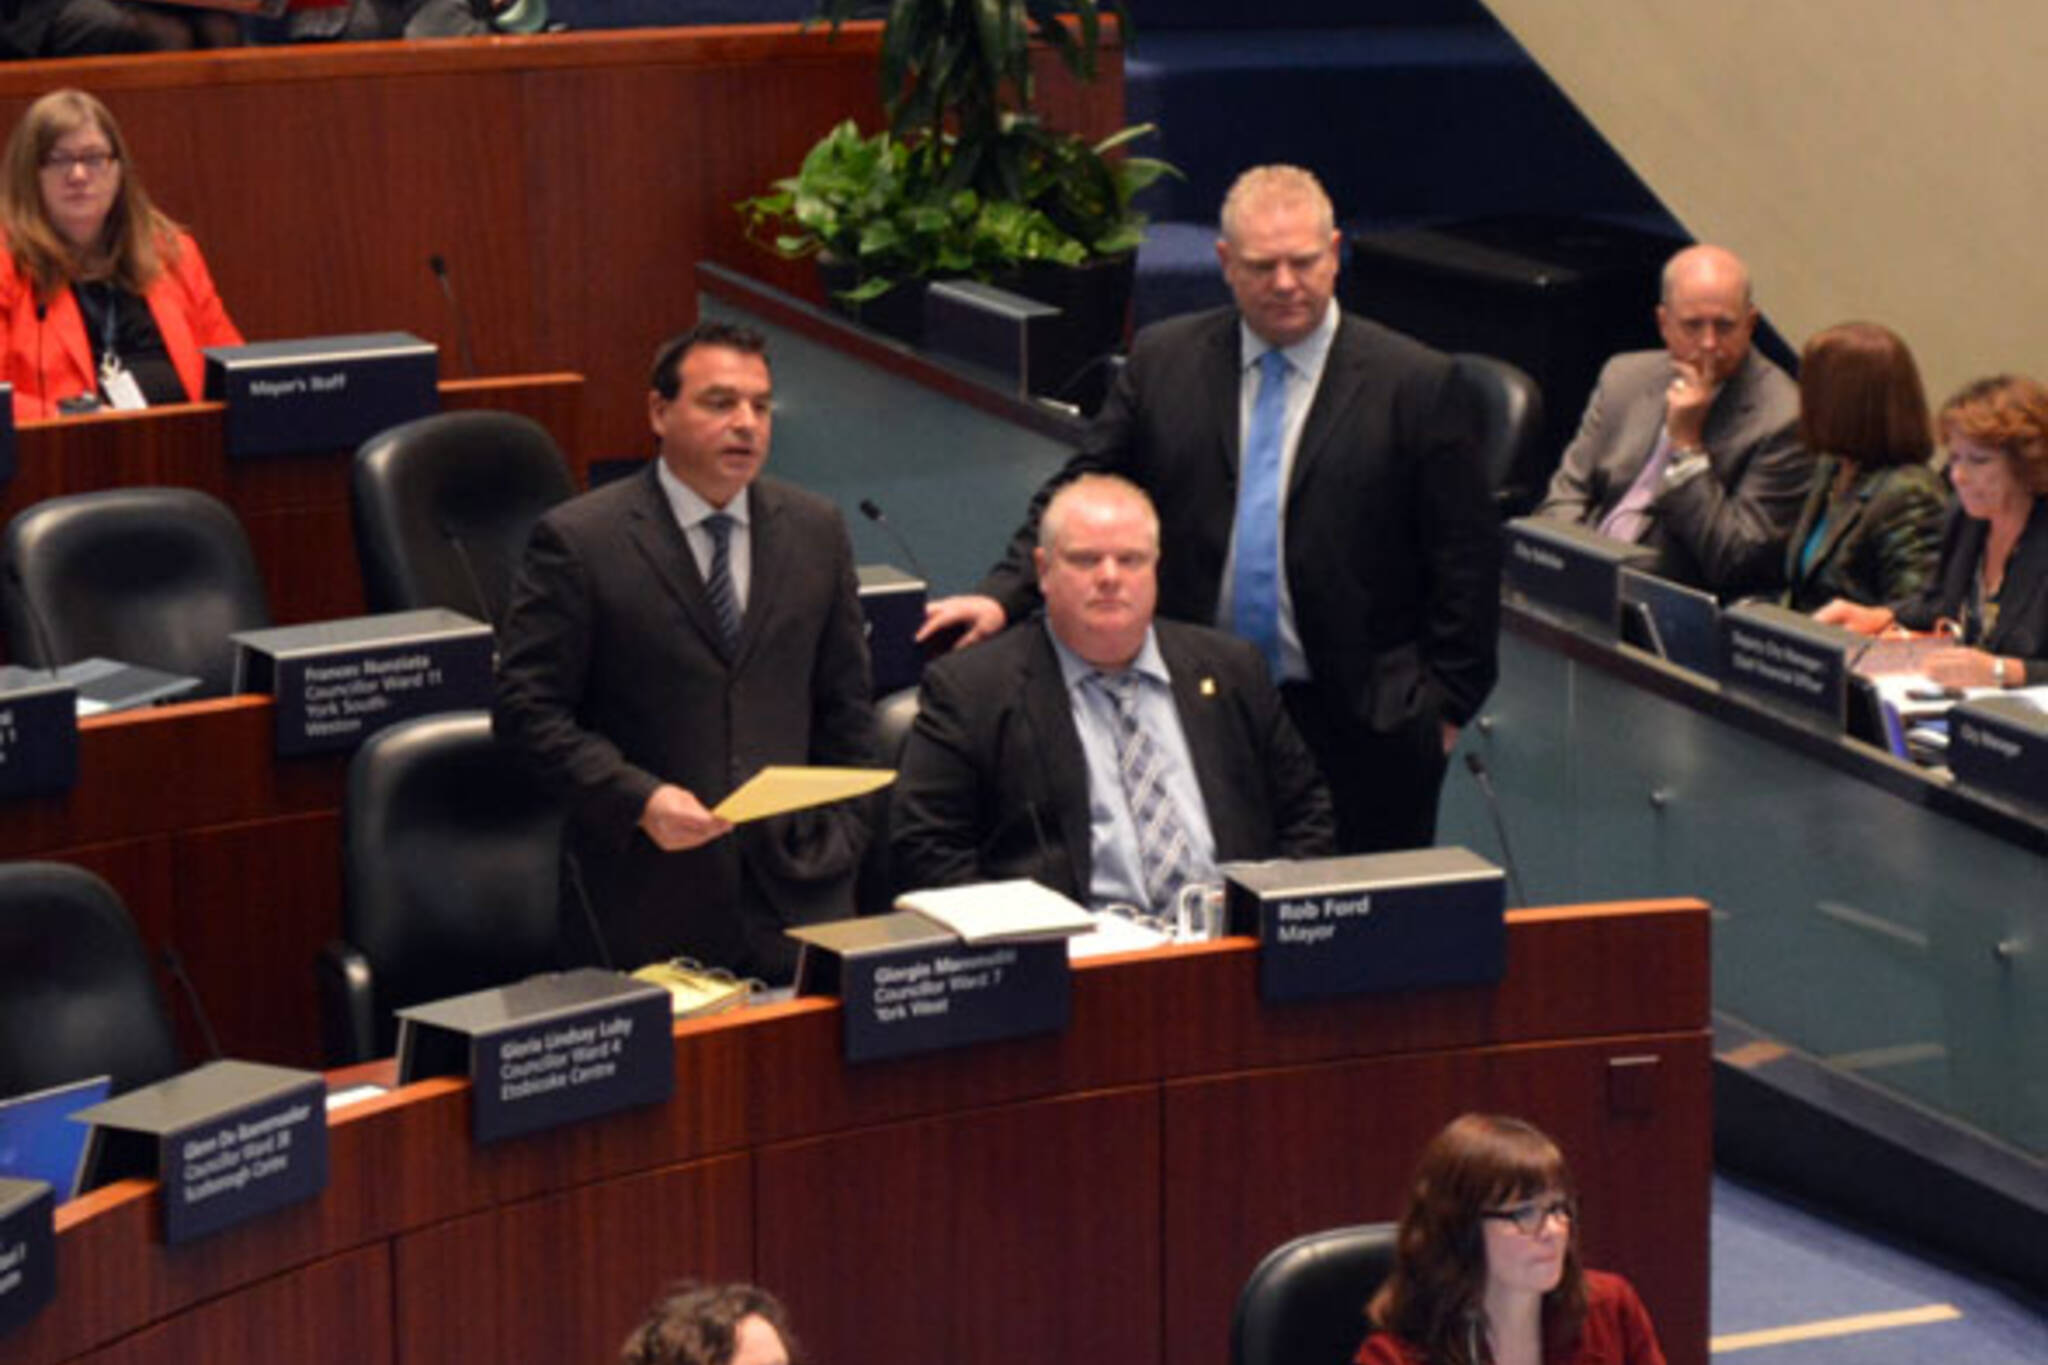 rob ford council